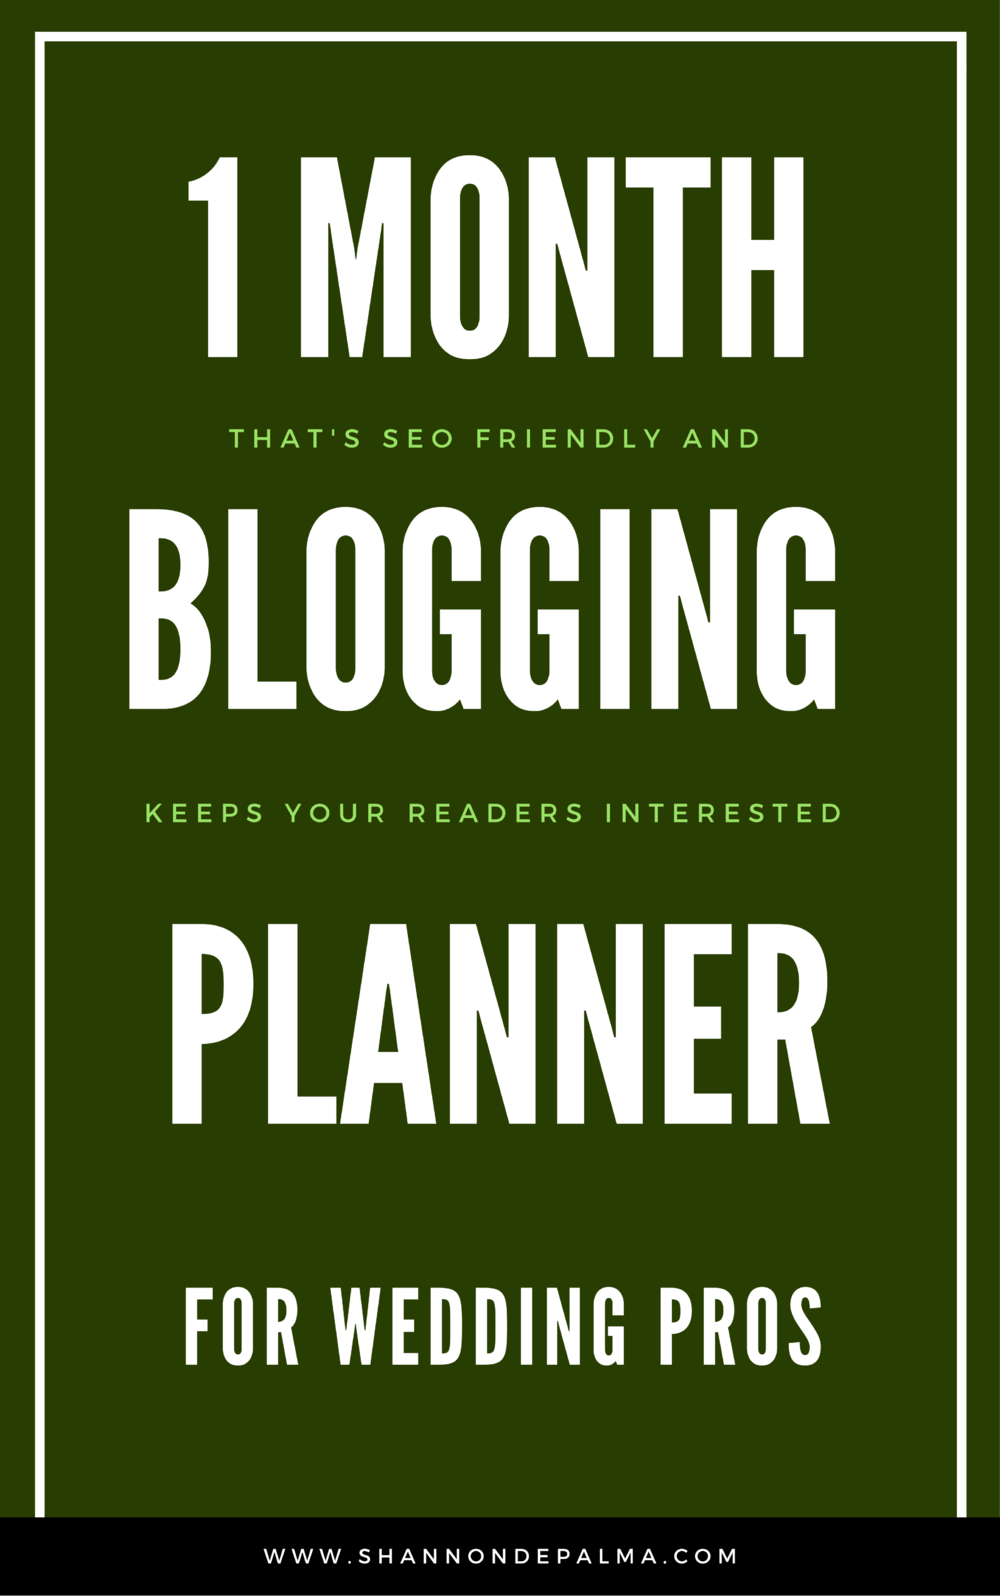 Use this planner with the Blogging webinar above